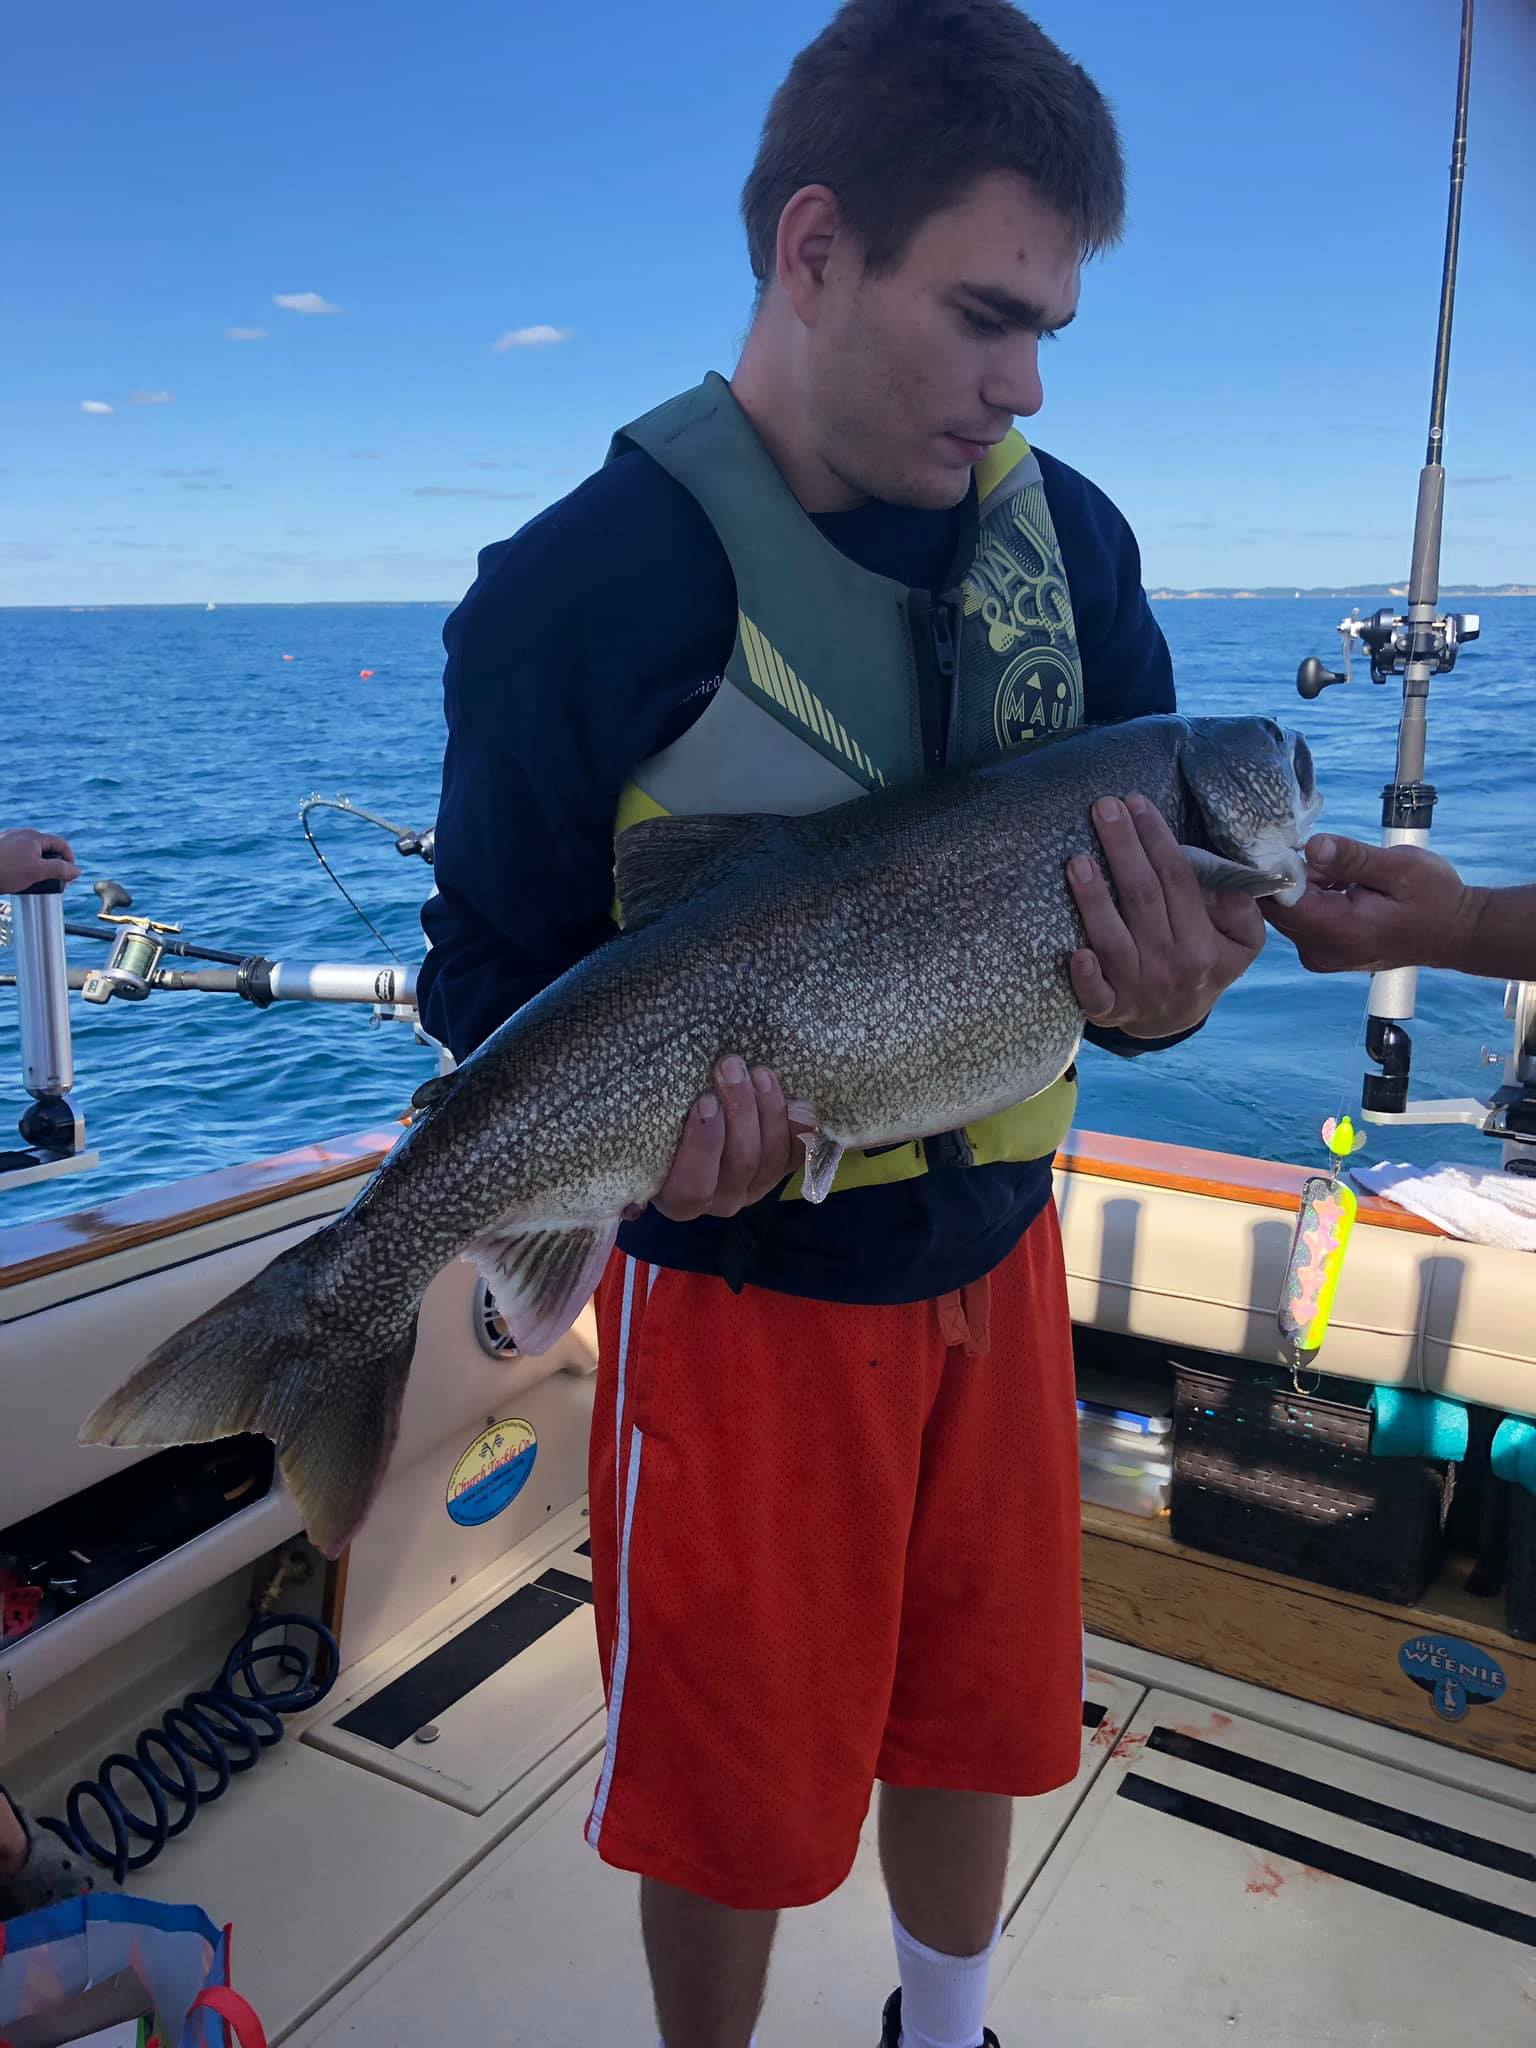 Trout Fishing in Muskegon and Michigan Lake